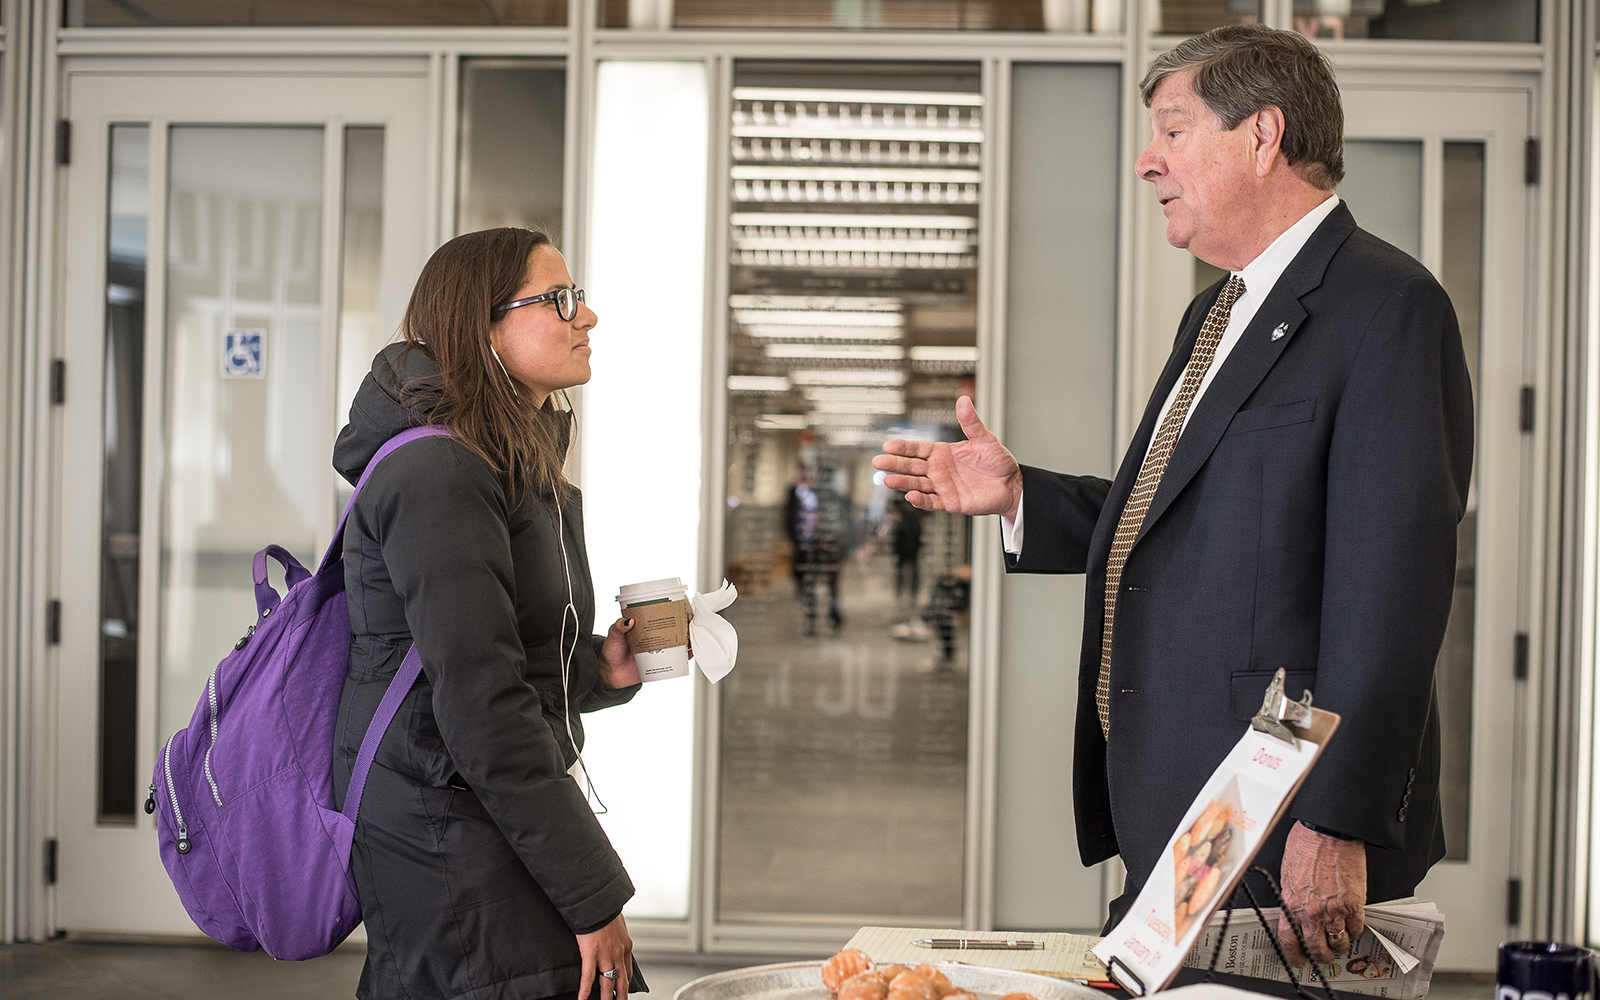 Students stopped for a meet and greet with UConn Business School Dean John Elliott on Tuesday morning. (Nathan Oldham/UConn School of Business)